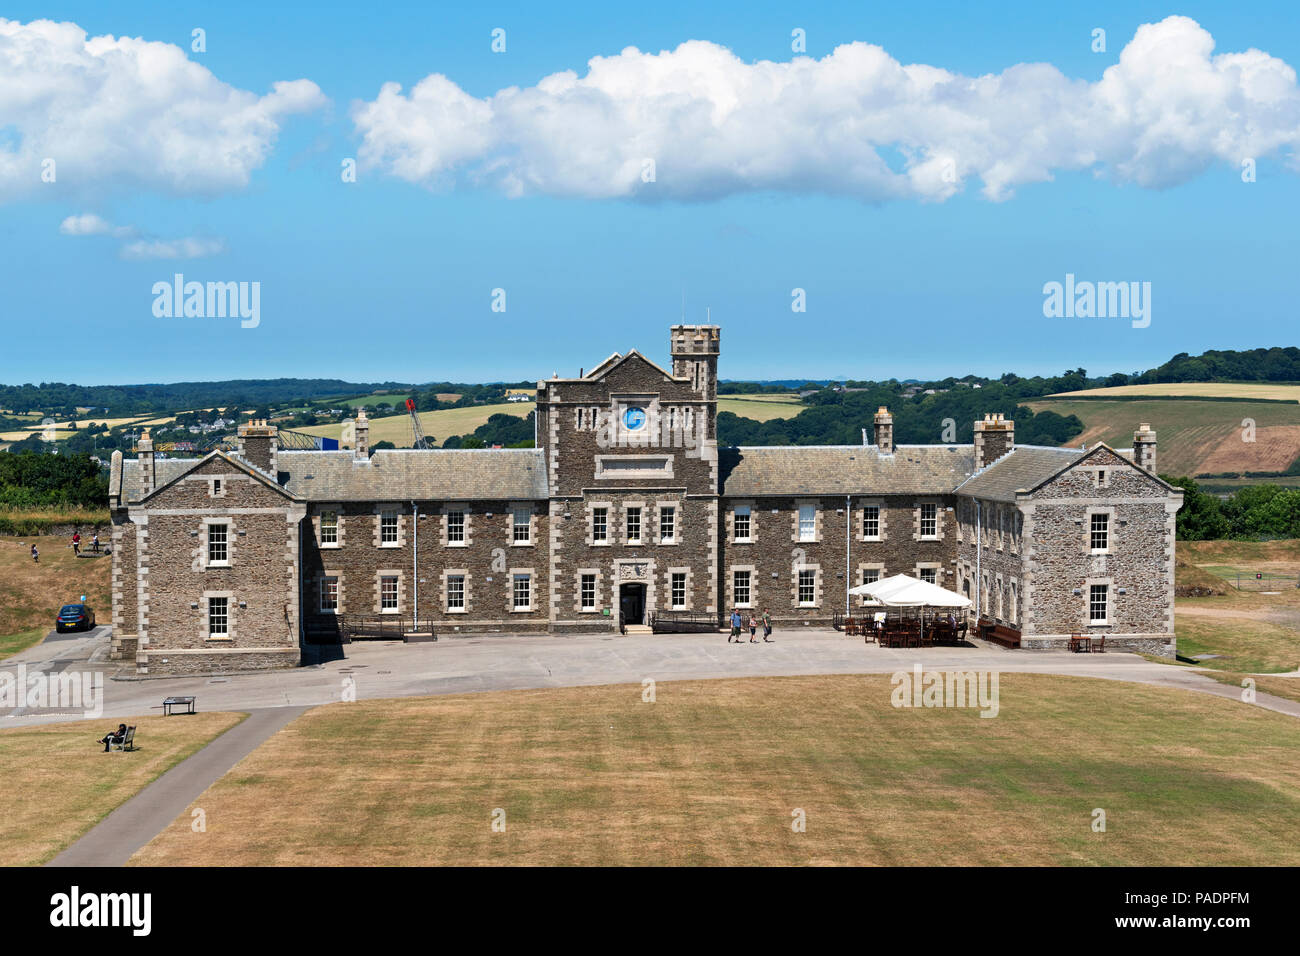 20th century barracks building in the grounds of pendennis castle, falmouth, cornwall, england, britain, uk. - Stock Image